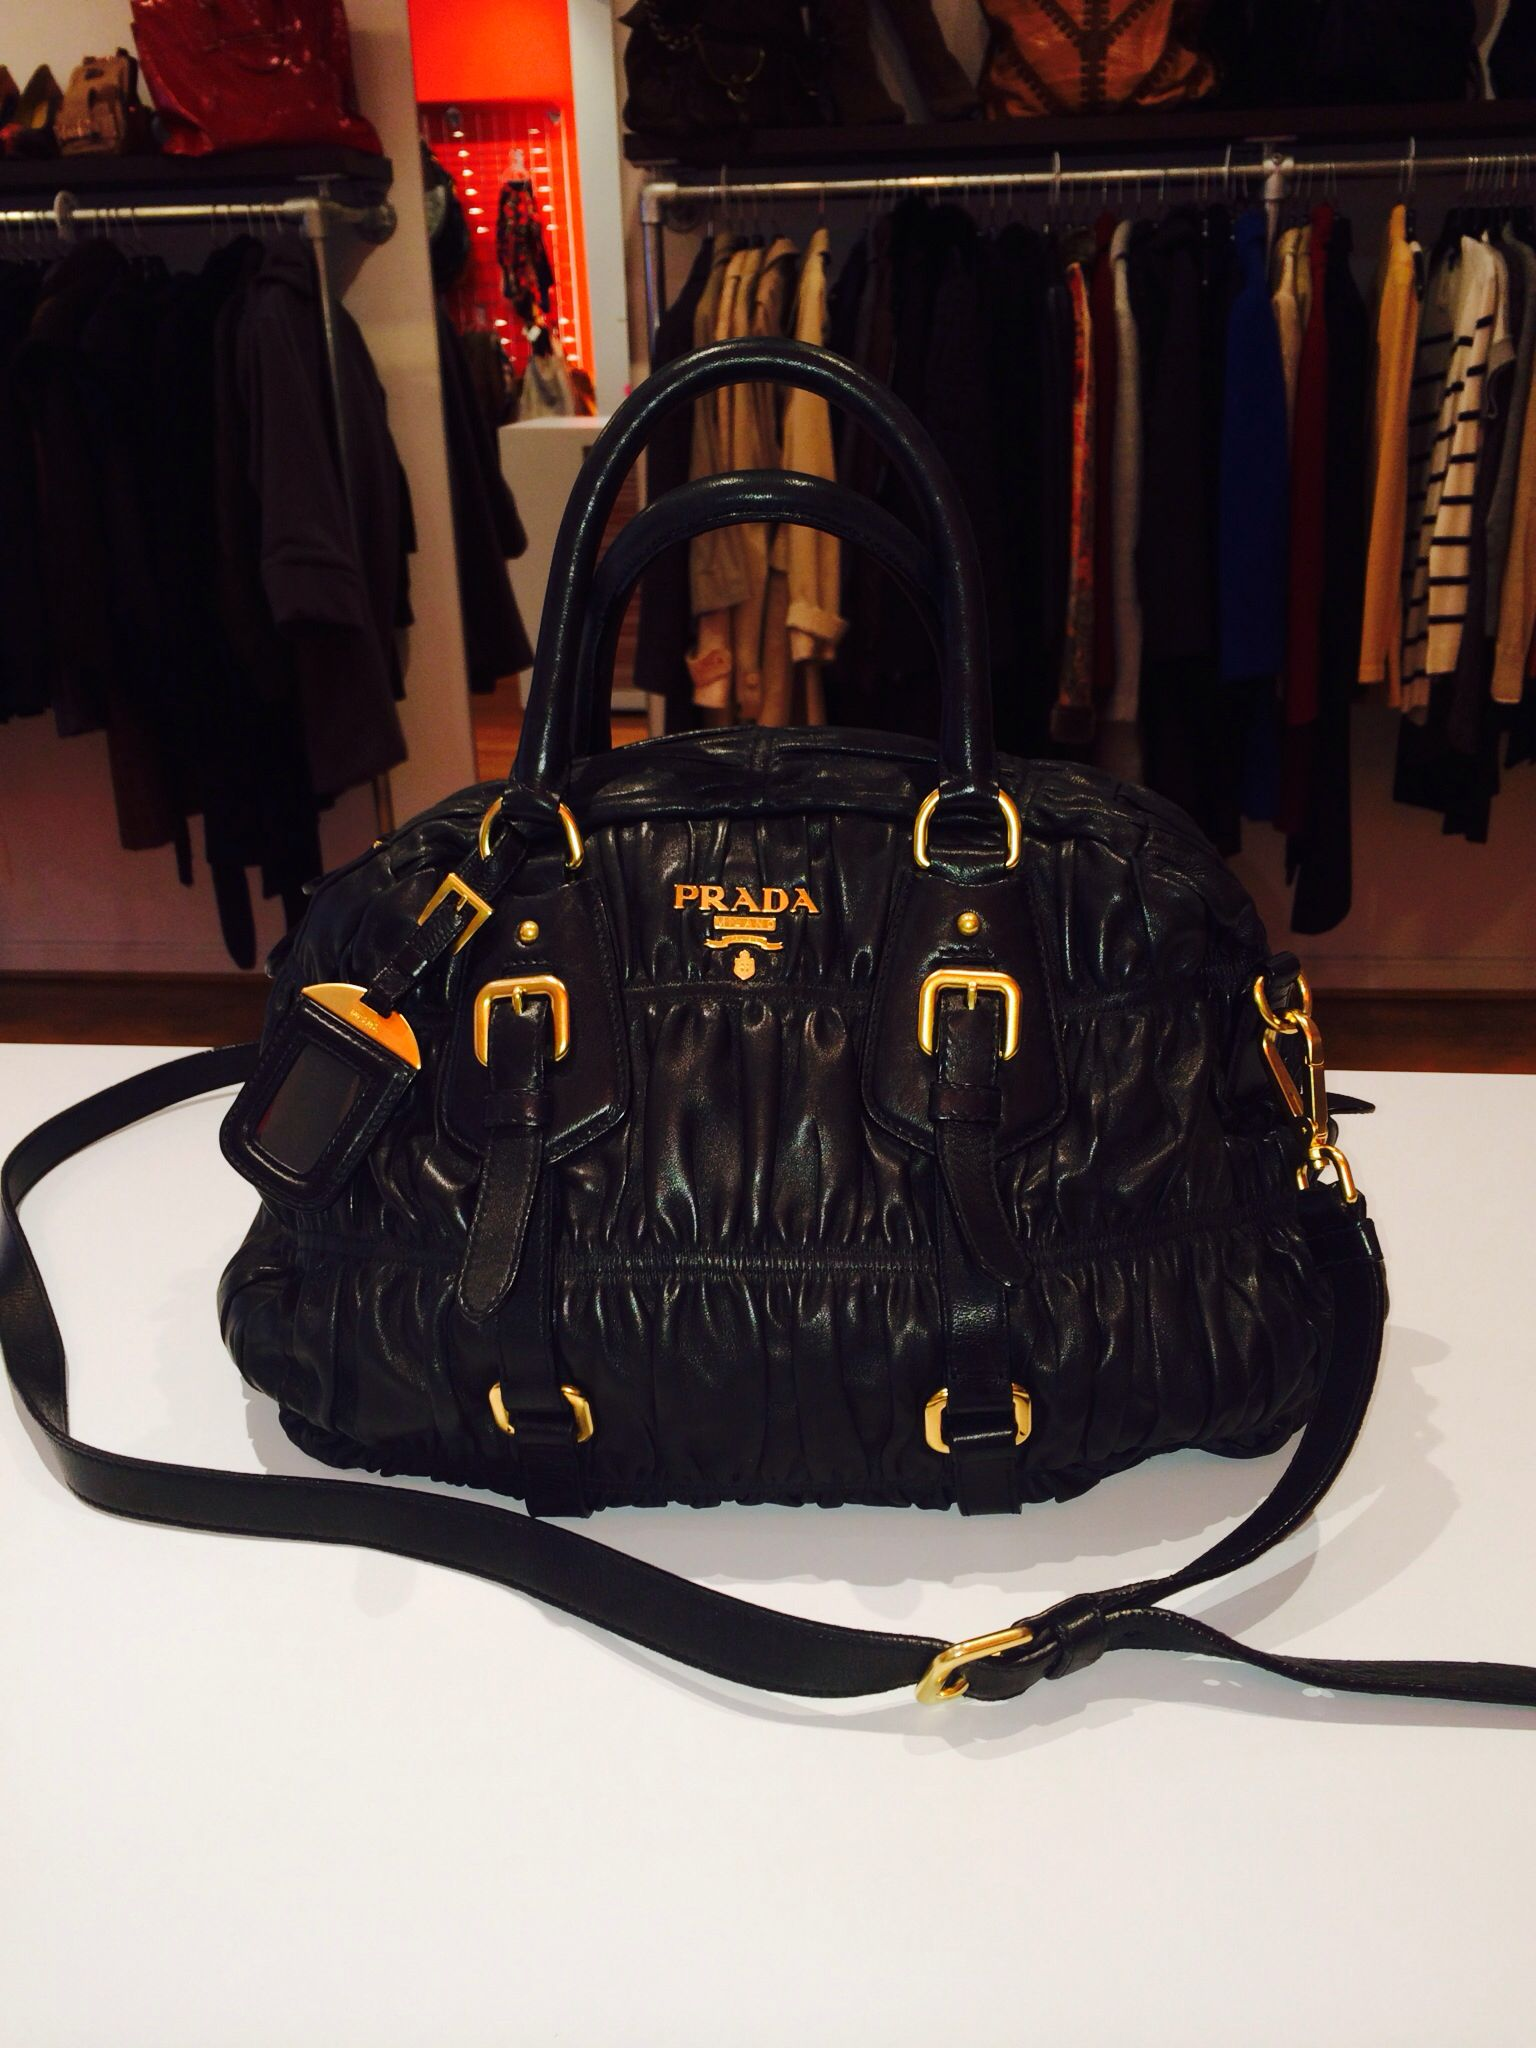 8b6b35bae139d9 Prada napa gaufre leather bowler large convertible bag available now at  Reddz Trading Georgetown